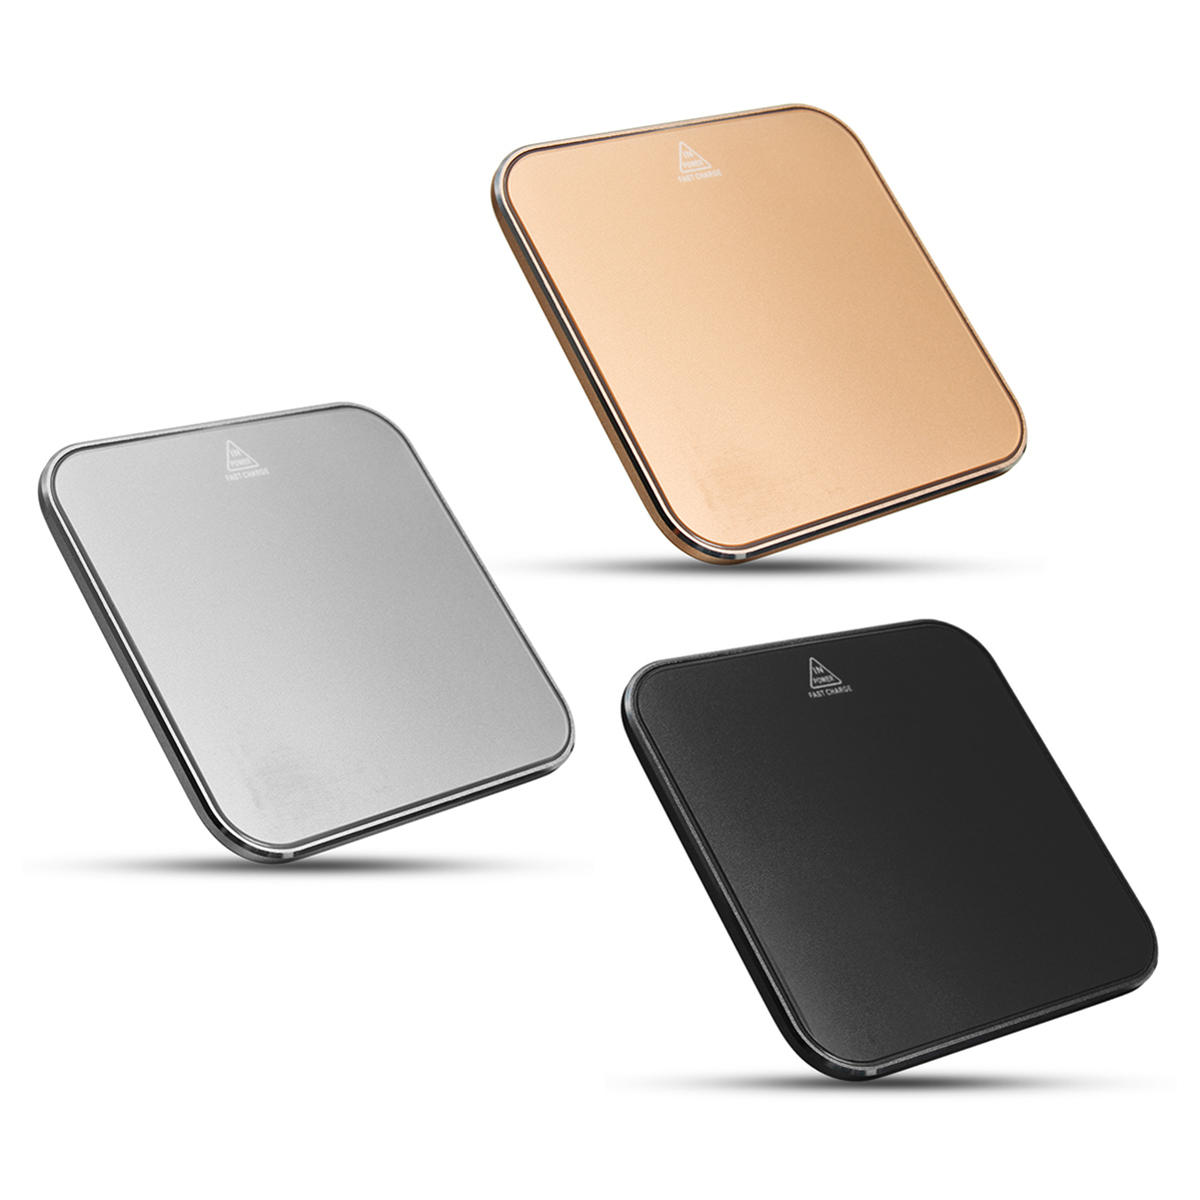 Universal  9V 1.8A Rotating Head Design Wireless Charger Pad for iPhone 8 Puls X Plus